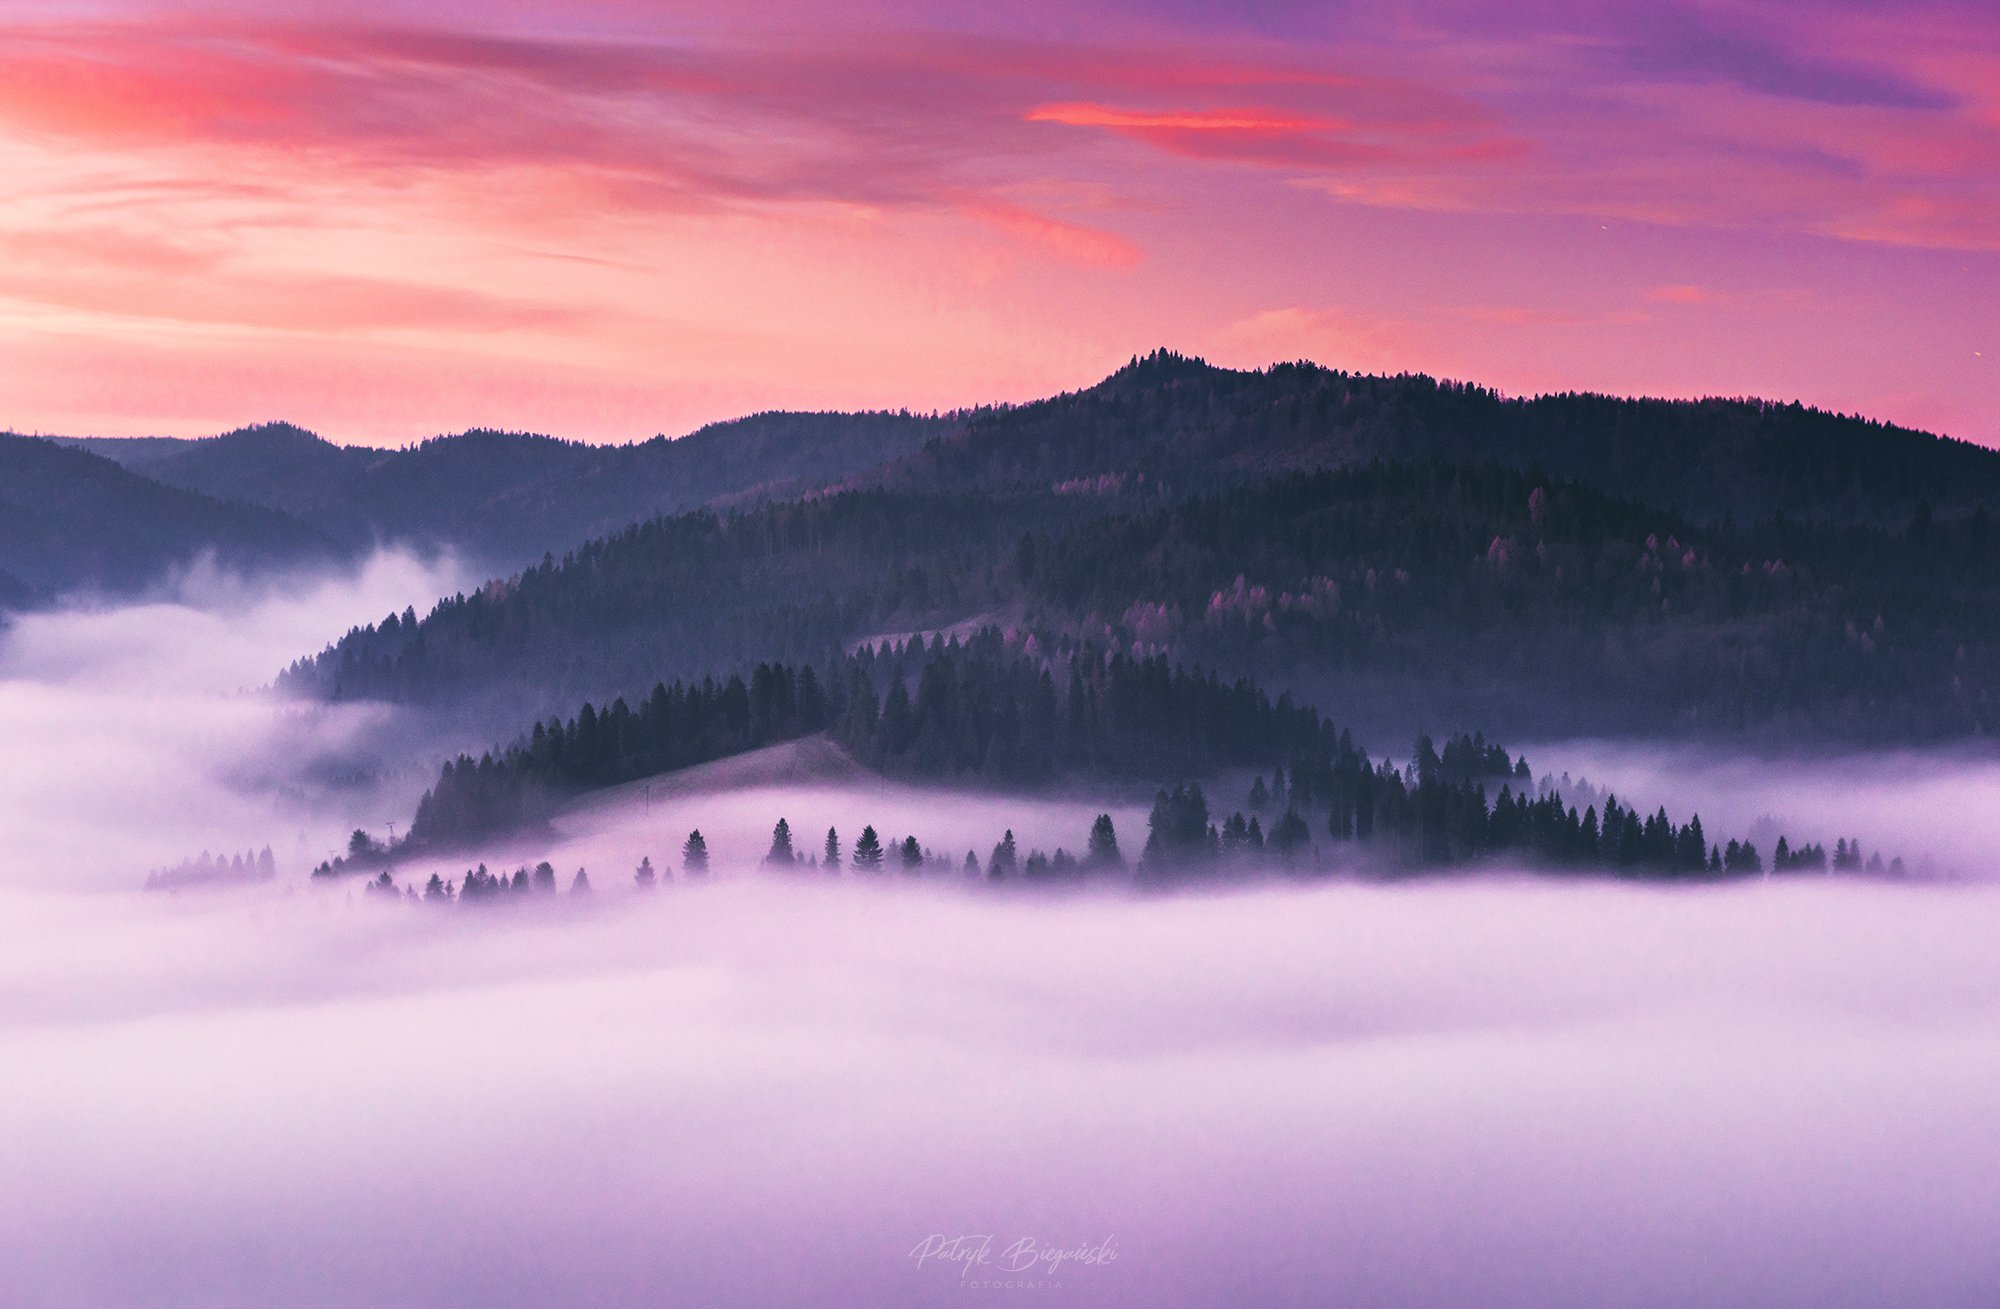 mountains, poland, slovakia, pieniny, light, sunrise, sun, light, landscape, hills, colors, purple, burning, skies, fog, mist, misty,, Bieganski Patryk